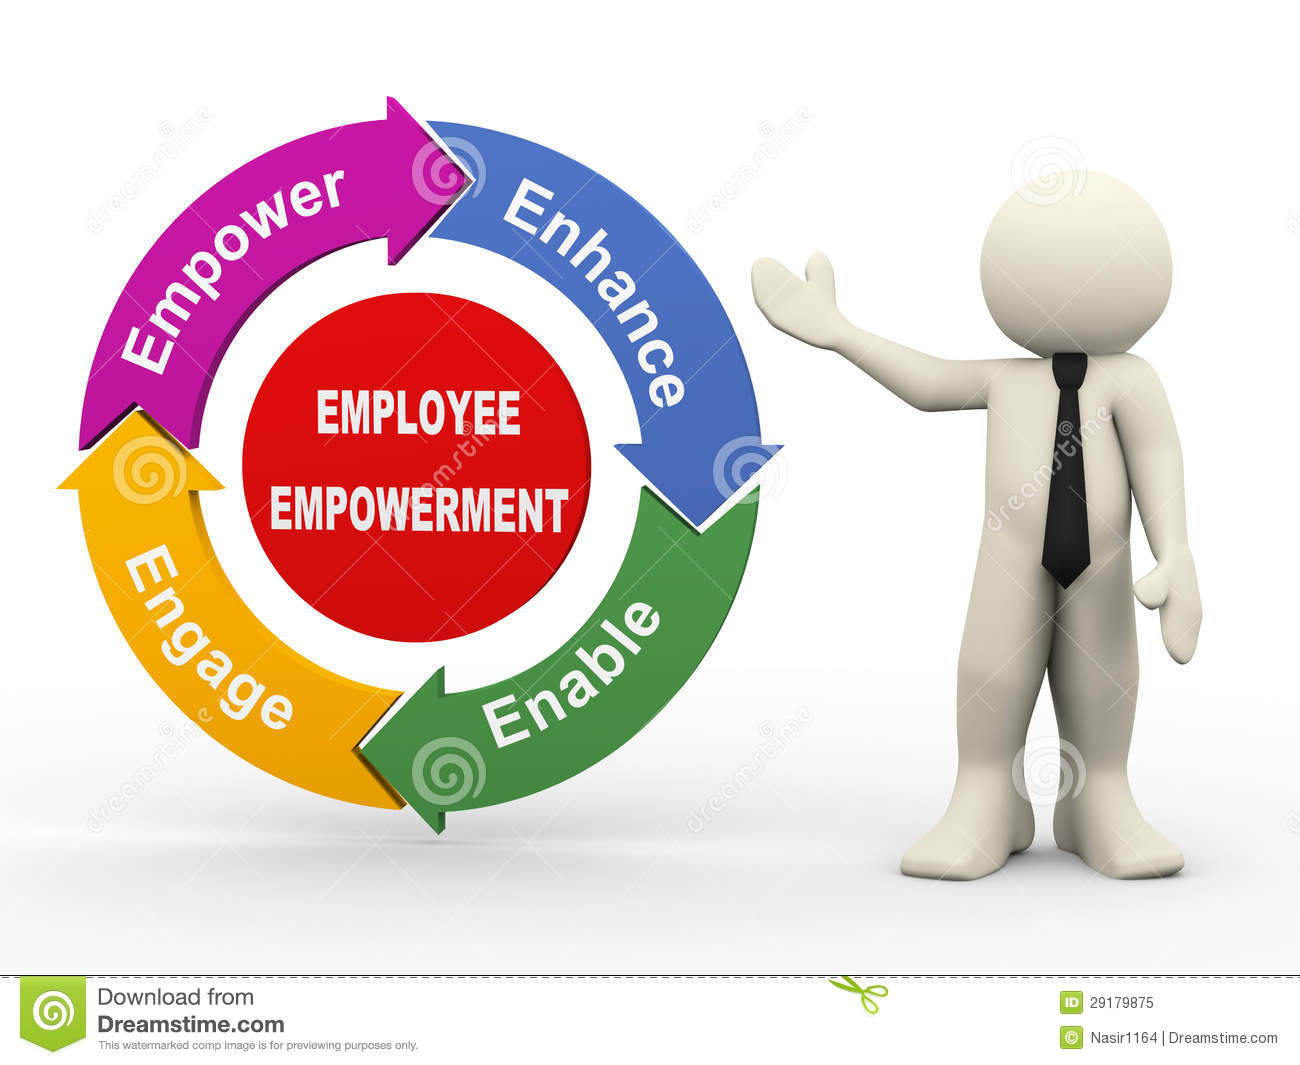 role of training and development in employee empowerment Empowered employees understand their role in supporting the vision by taking care of the needs of the customers joseph juran (one of the early quality 2 employee empowerment is centered on the needs of the customer when employees are empowered to make decisions that help the customer.